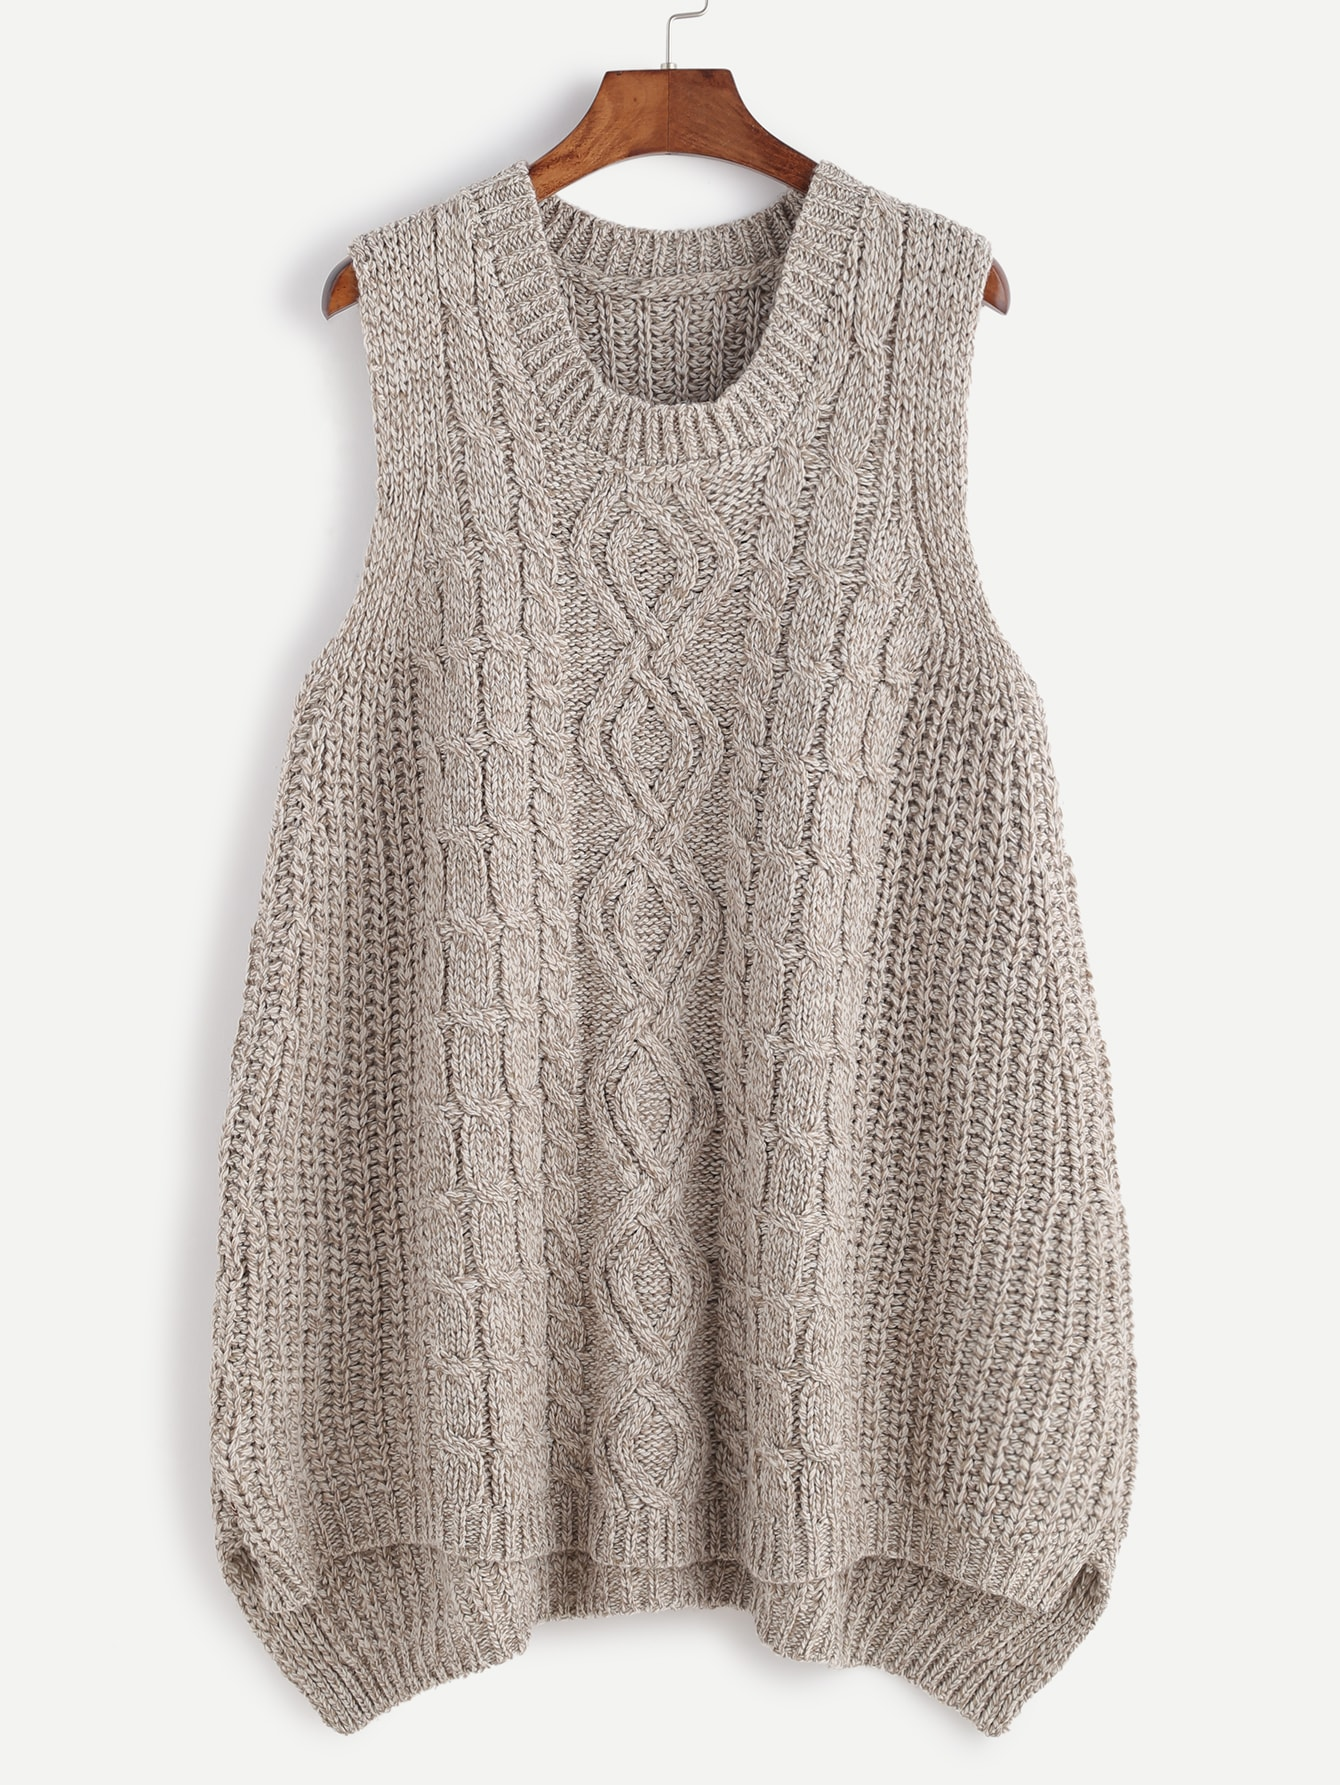 Khaki Slit Side High Low Cable Knit Sweater Vest